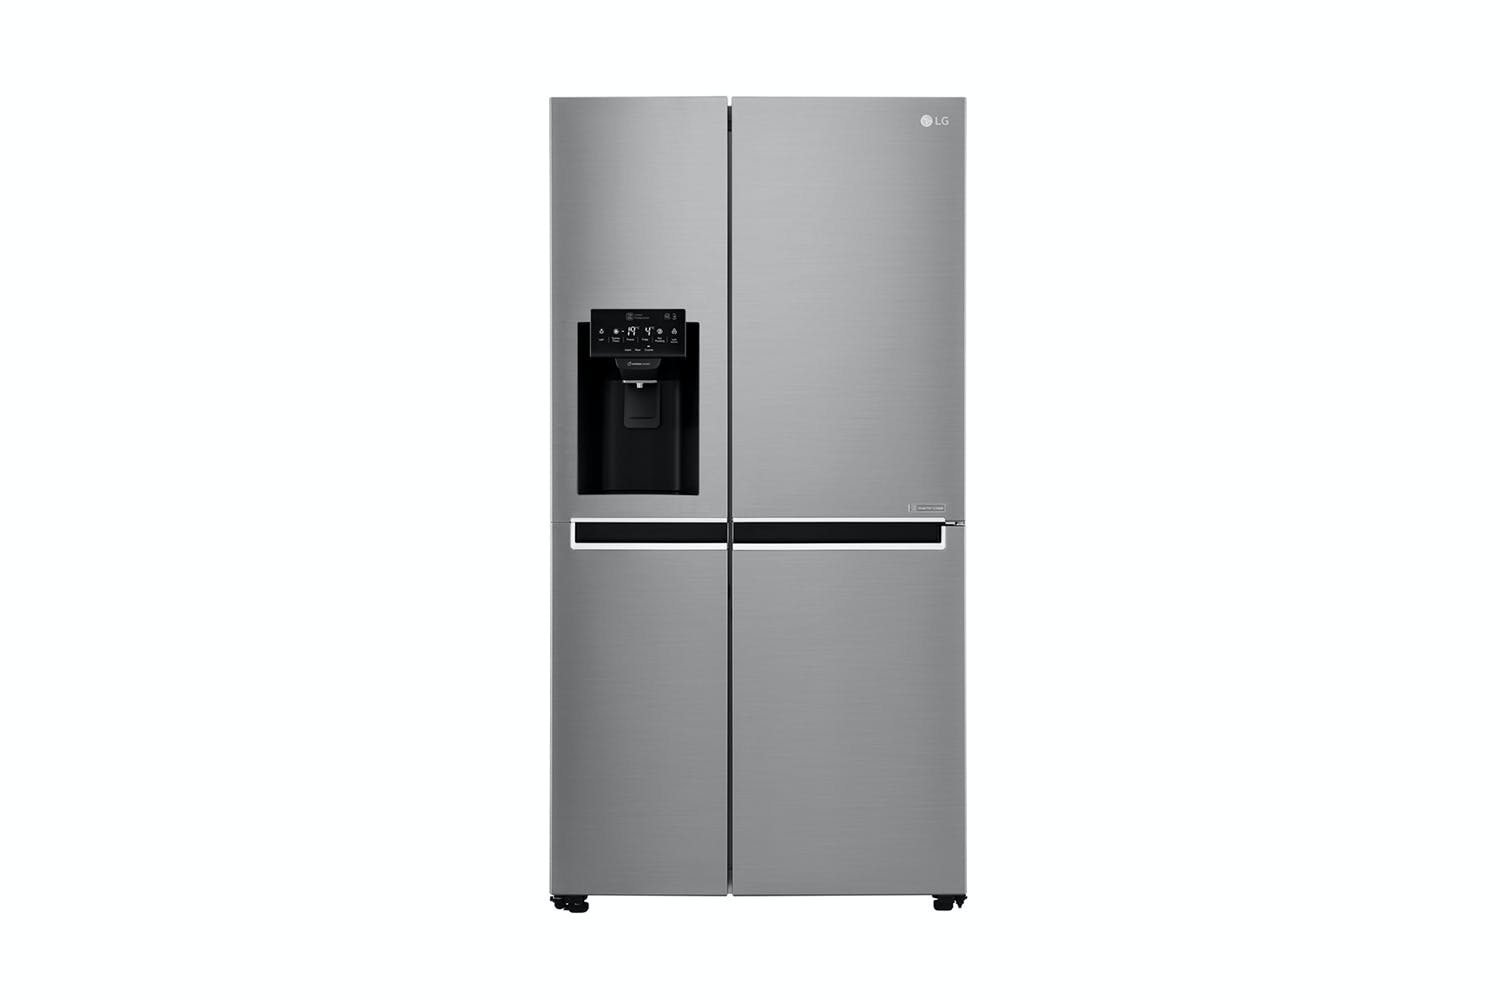 lg 668l side by side fridge freezer harvey norman new zealand. Black Bedroom Furniture Sets. Home Design Ideas